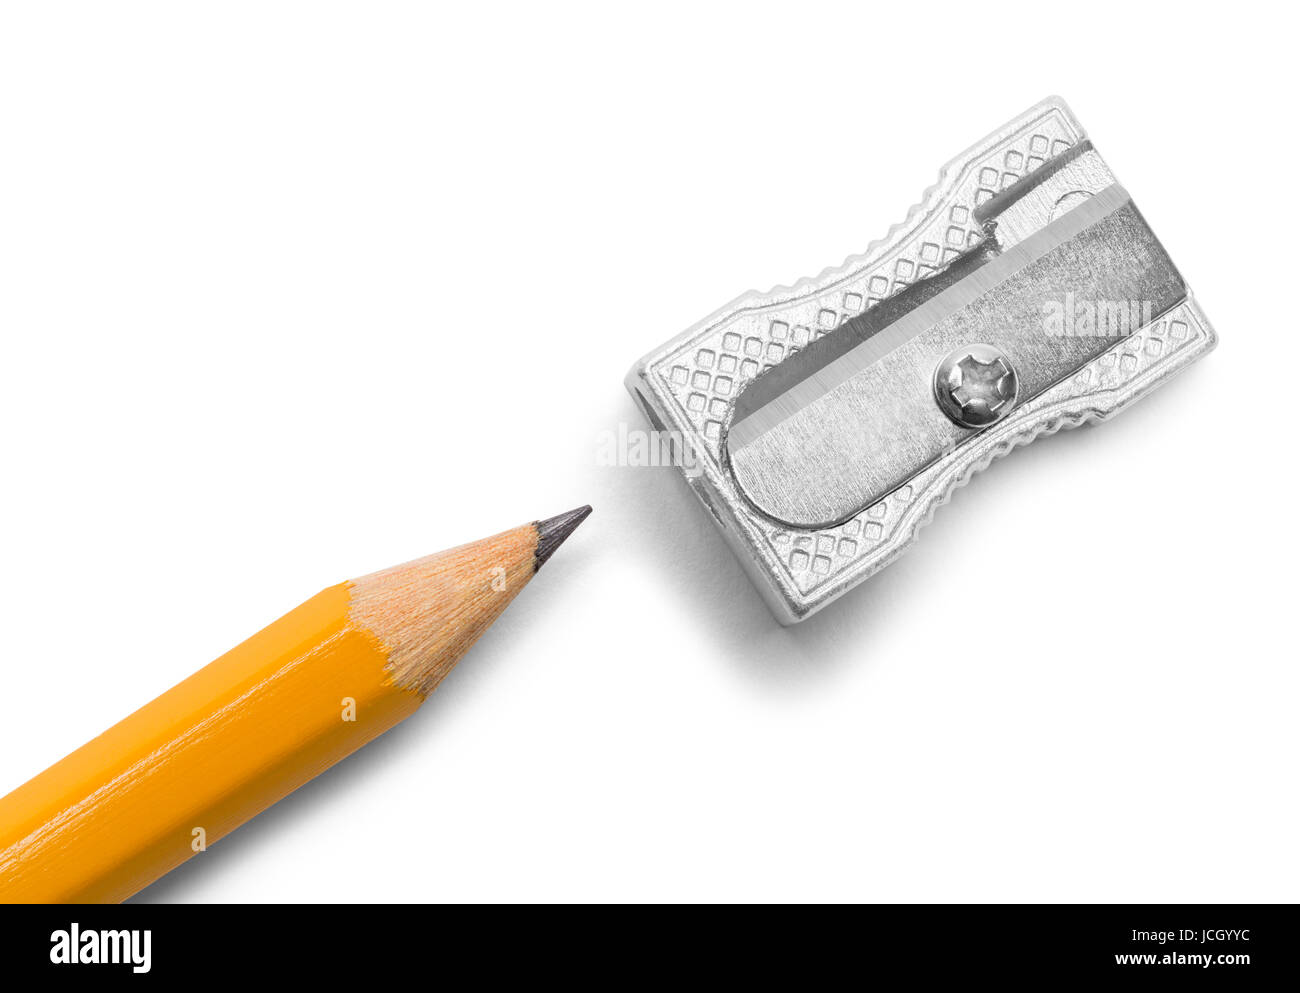 Metal Pencil Sharpener and Pencil Isolated on White Background. - Stock Image